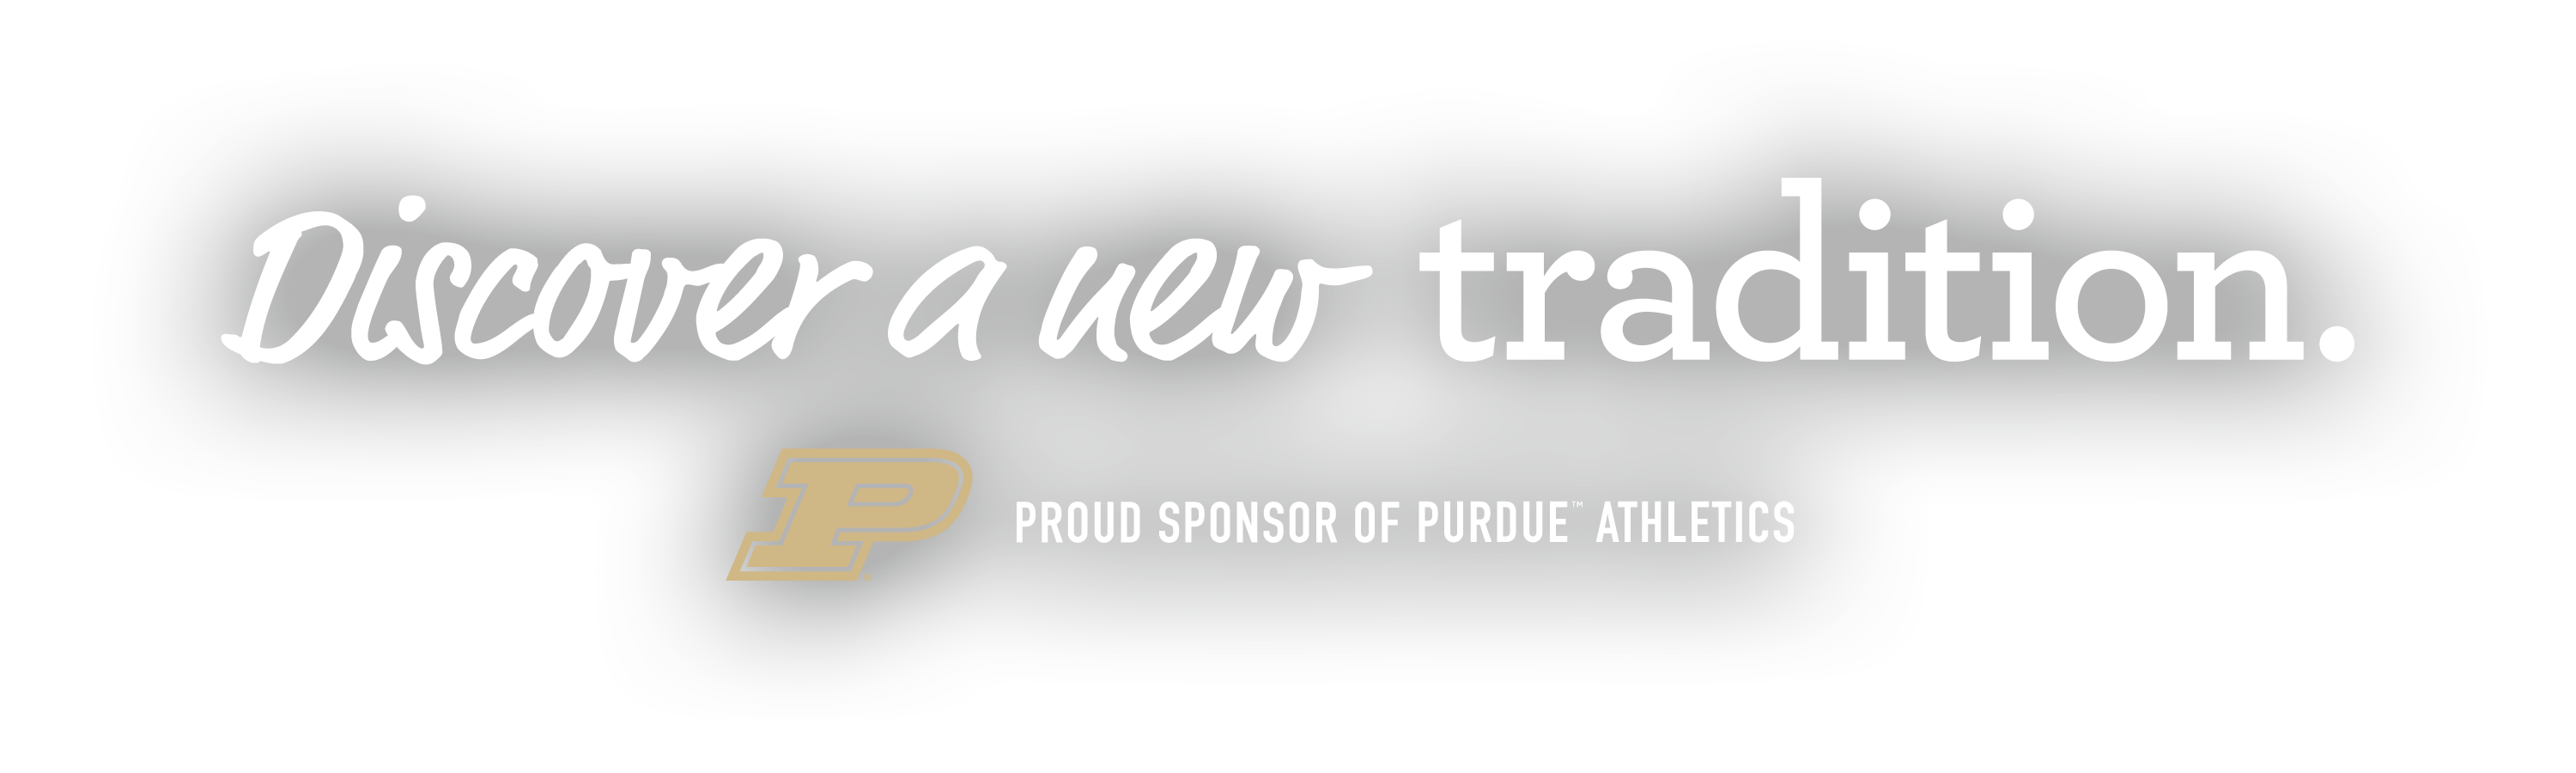 Discover a new tradition. Proud sponsor of Purdue athletics. Apartments near Purdue.